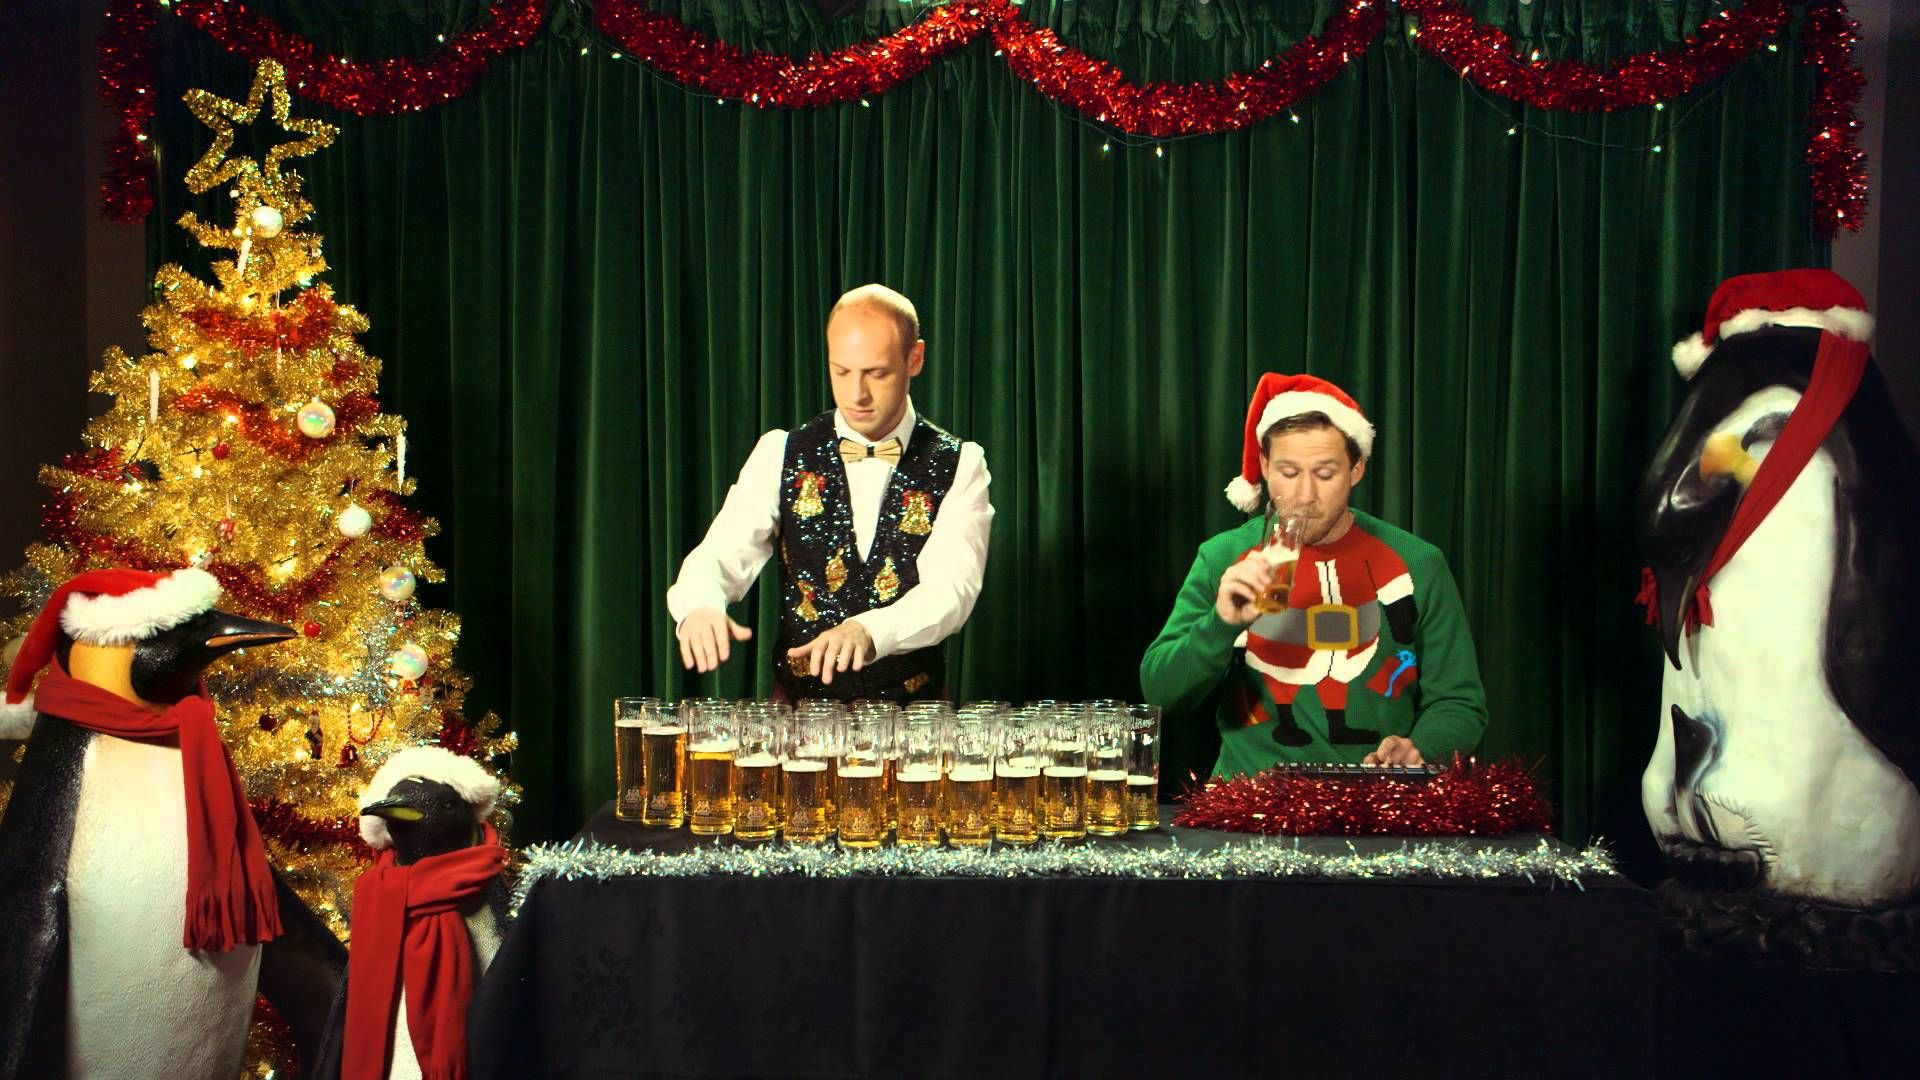 Carling Pint Harp | Christmas Ads | Pinterest | Fun things and Youtube